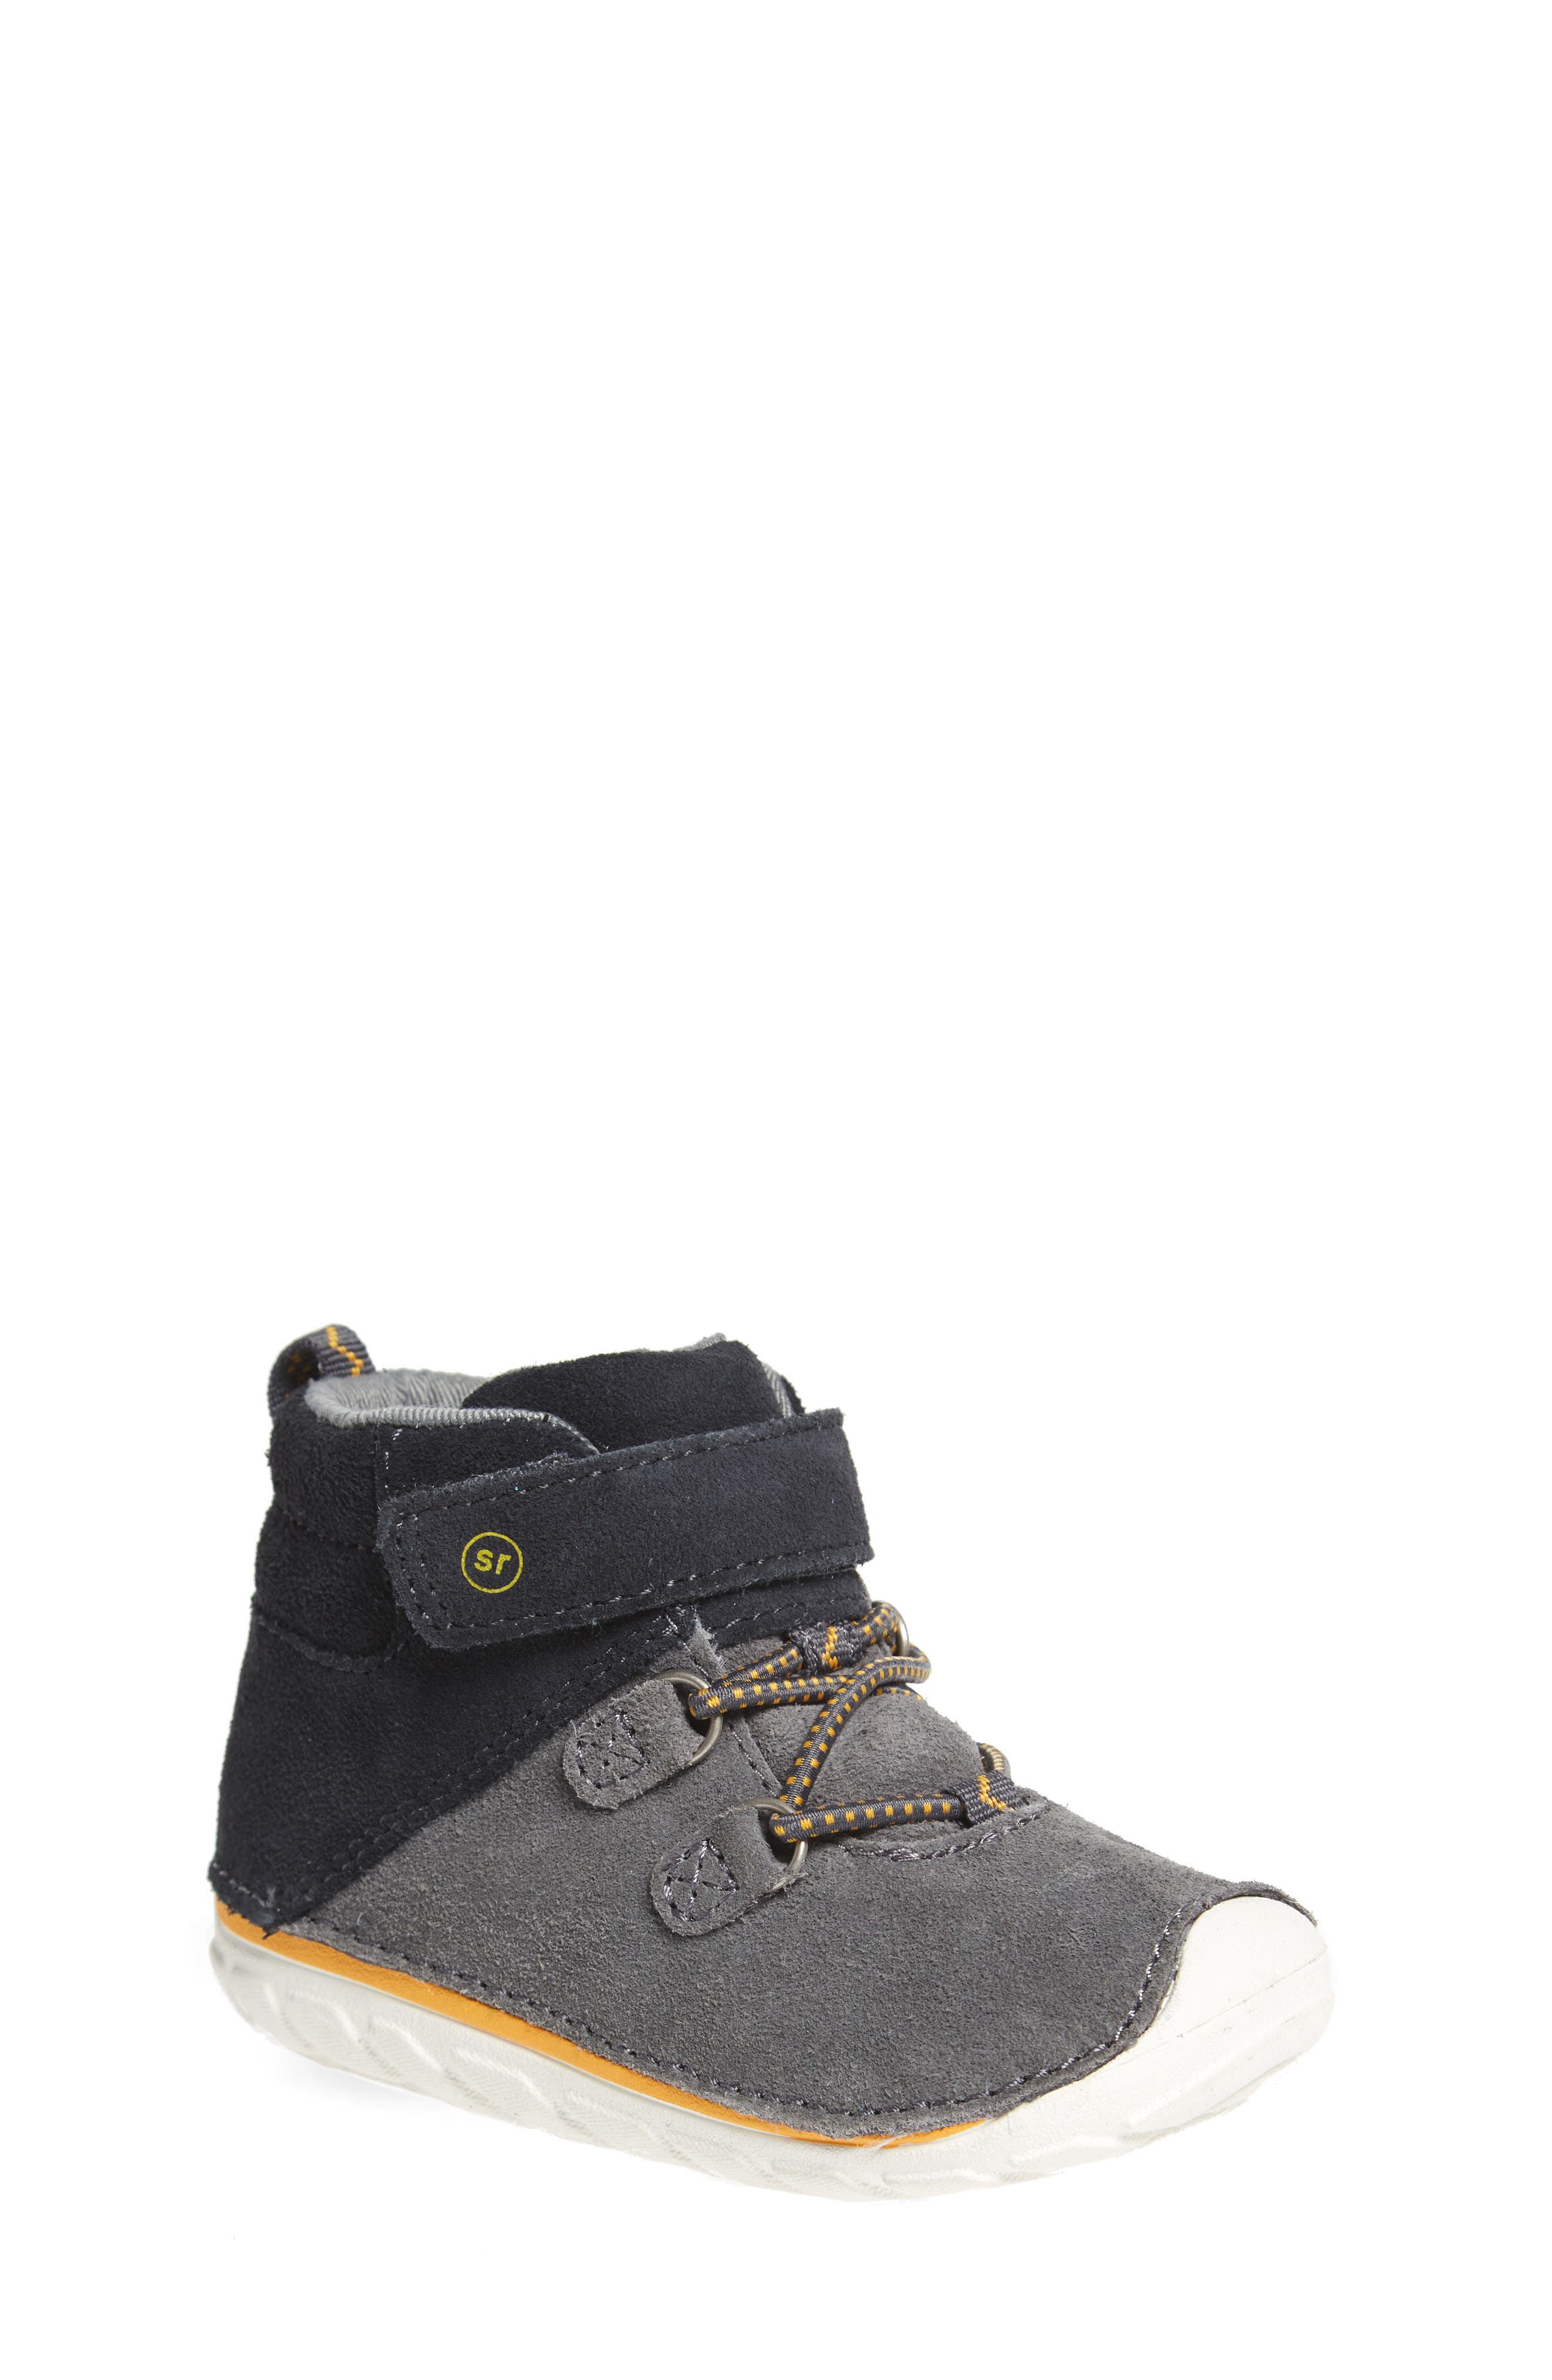 Soft Motion<sup>™</sup> Oliver High Top Sneaker,                             Main thumbnail 1, color,                             Grey Suede